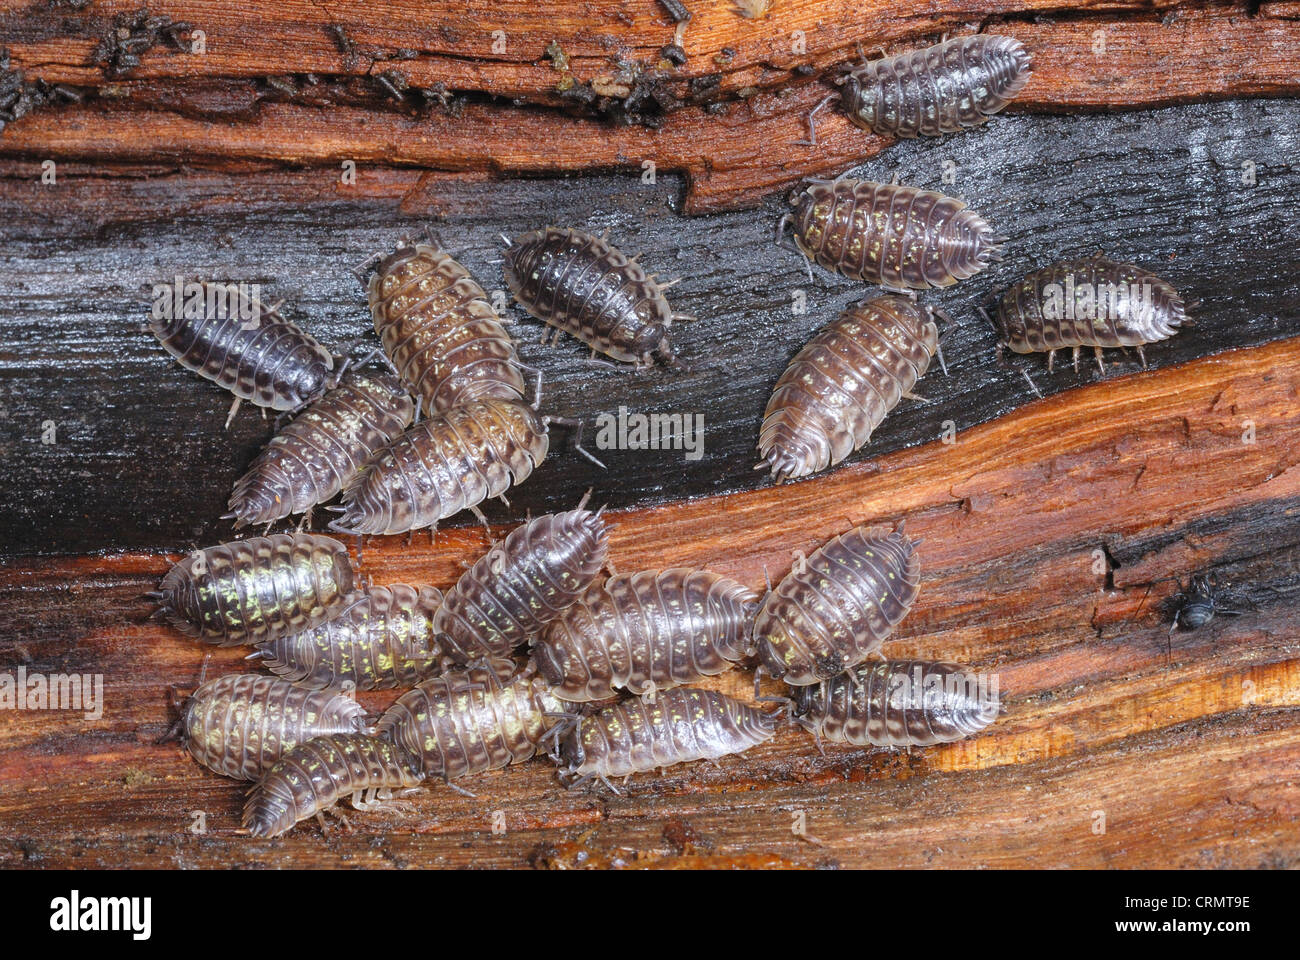 Common Garden Woodlice (Oniscus asellus) feeding on a rotting log - Stock Image